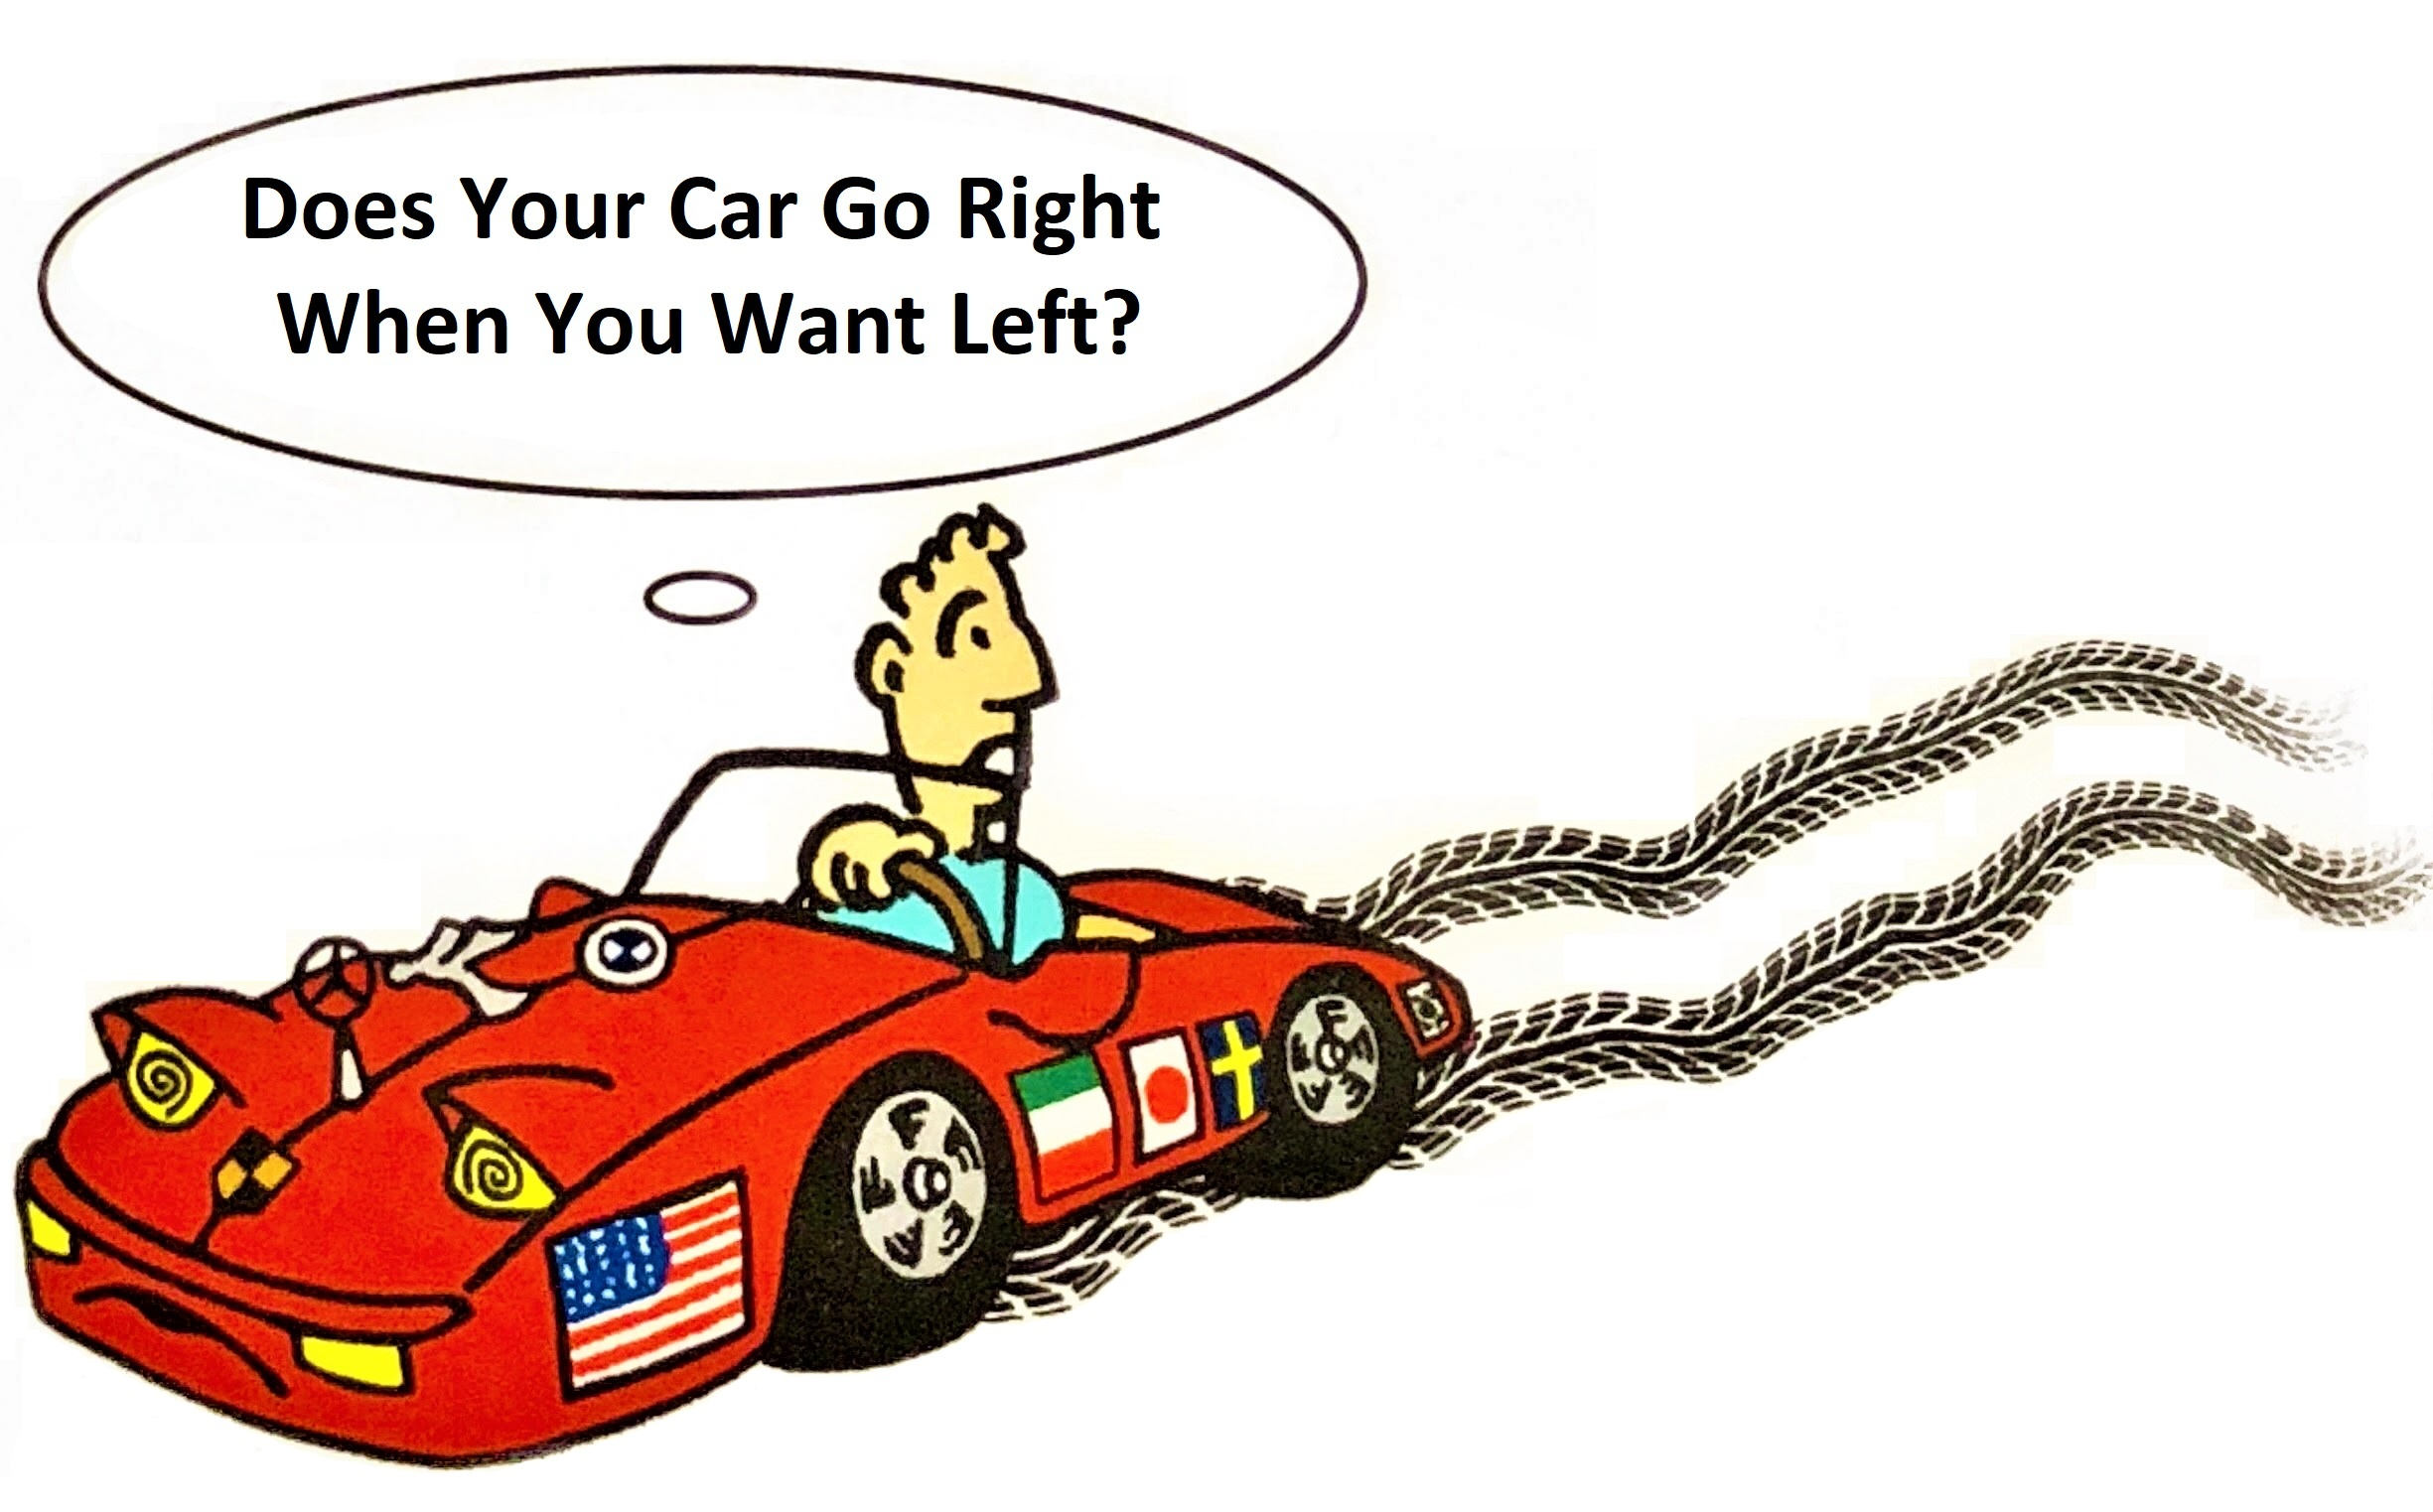 Does your car go right when you want left?